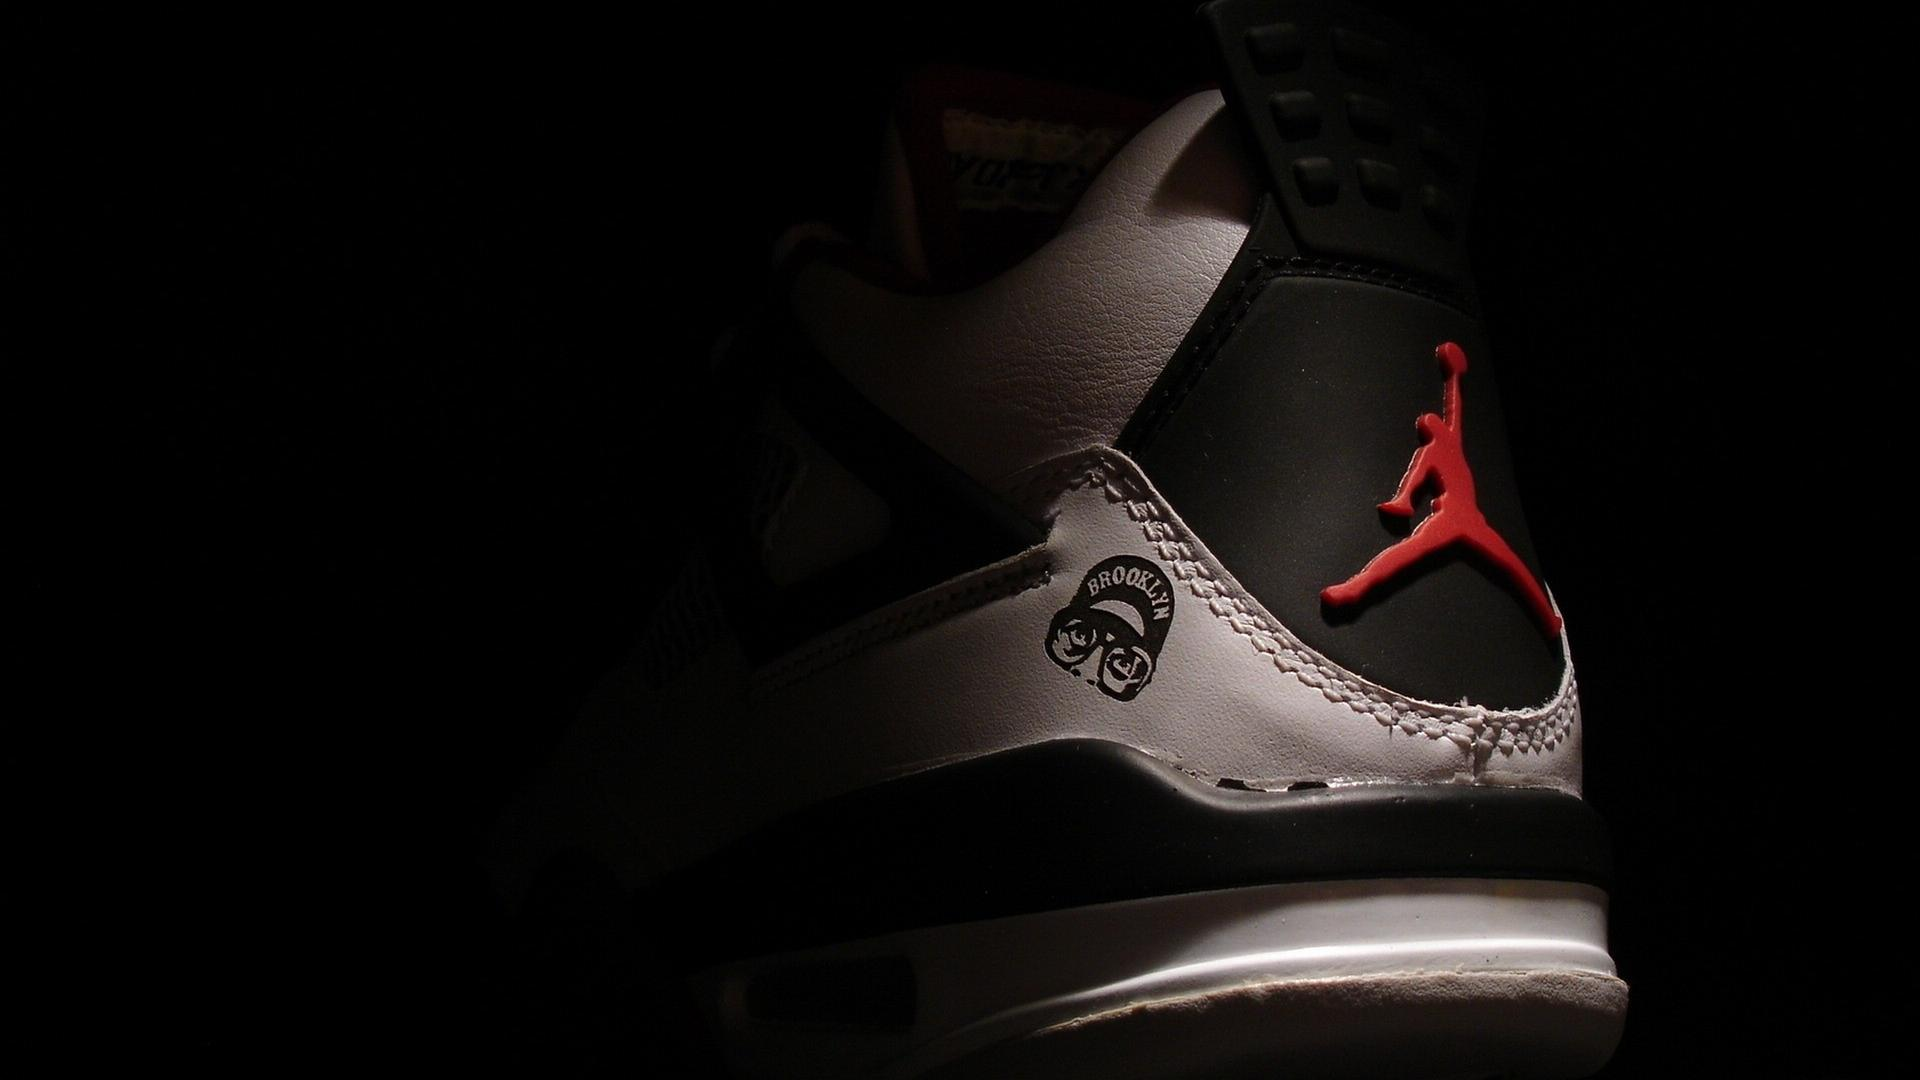 Jordan Sneakers Wallpapers